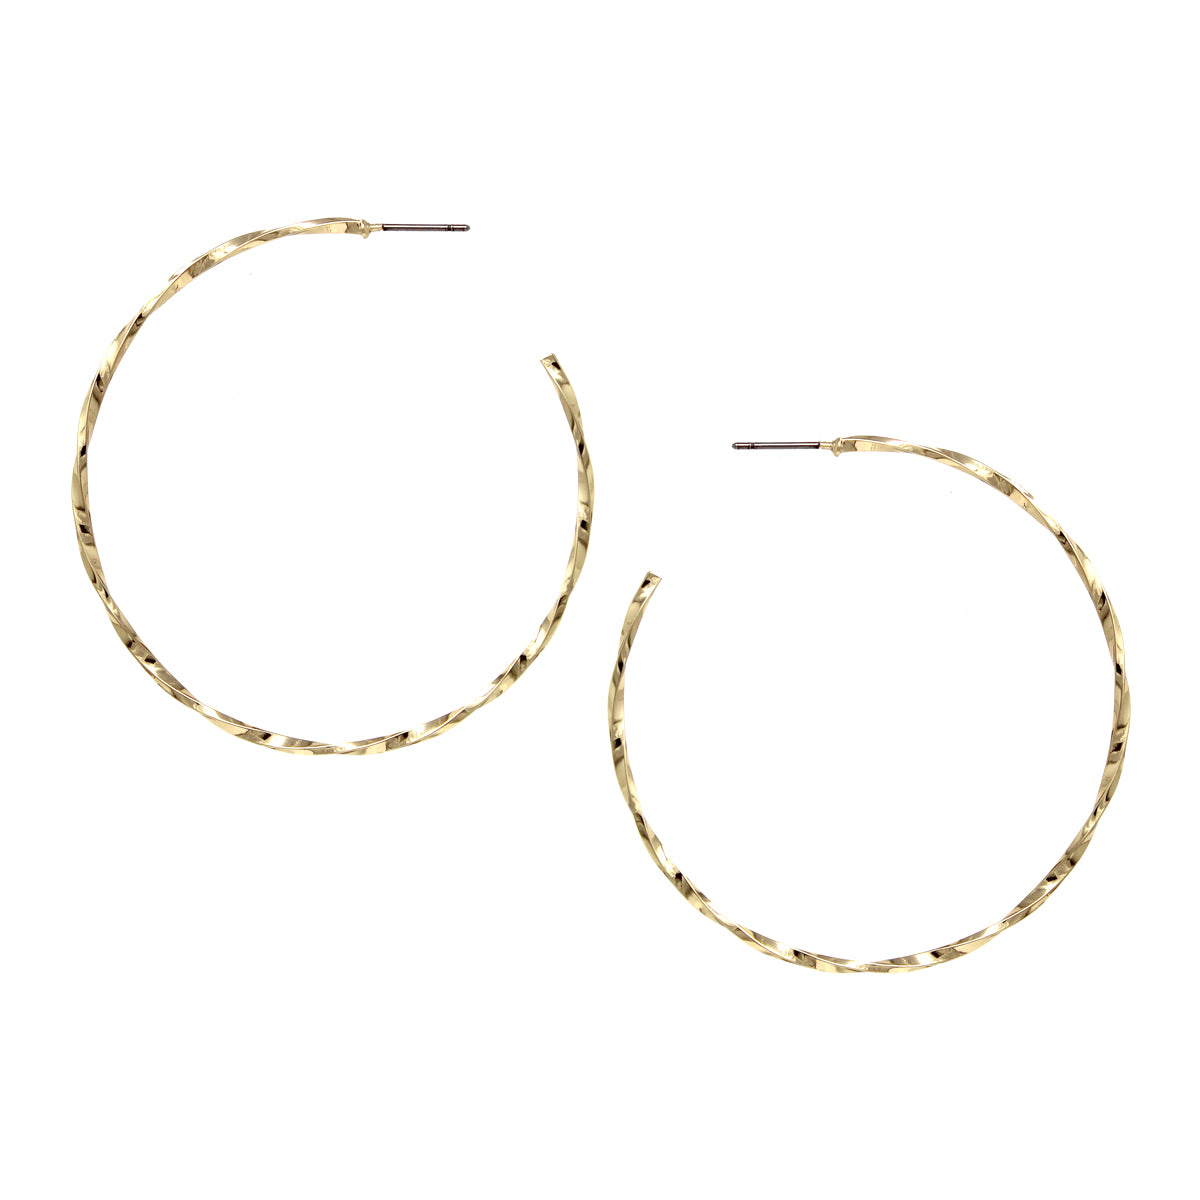 Twisted Metal Hoop Earrings (55 mm)